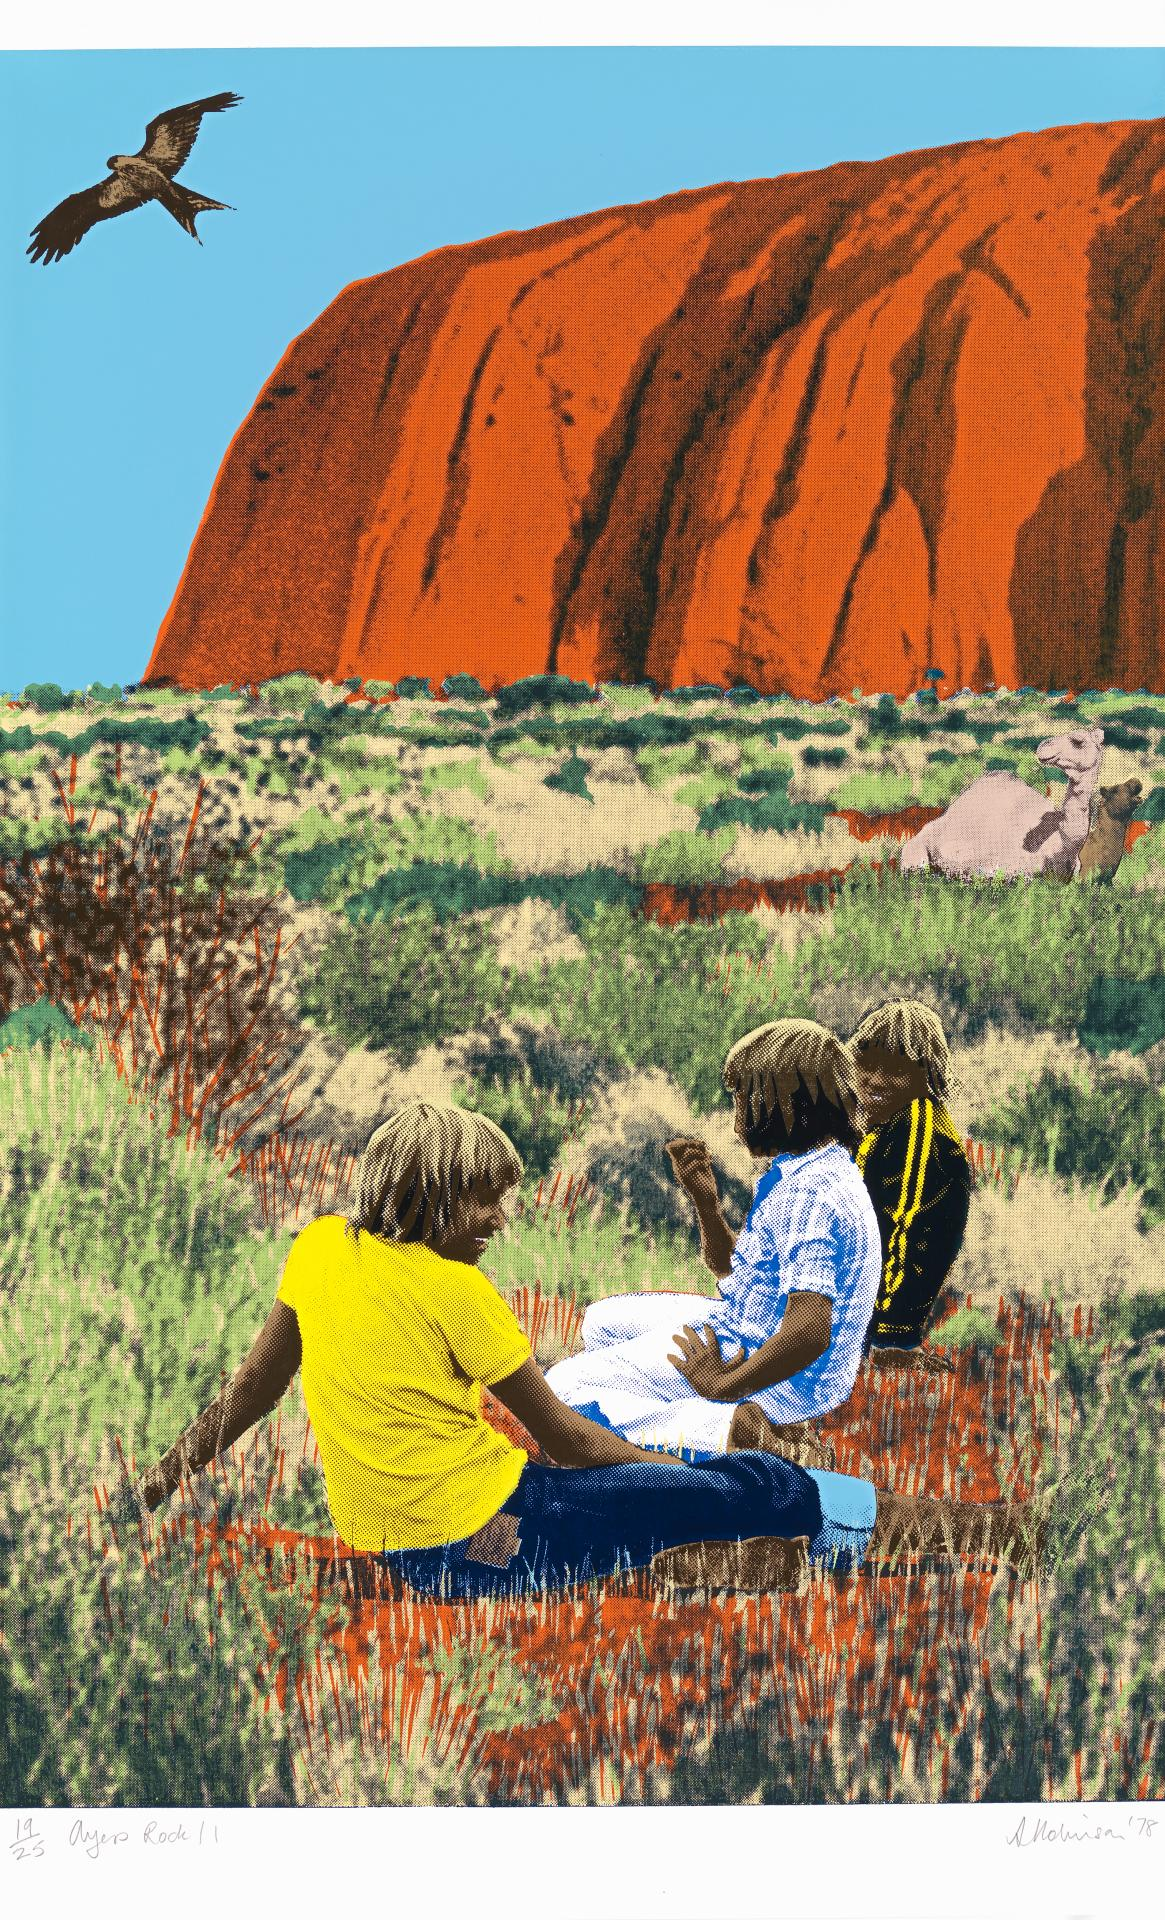 Ayers Rock 1, 2, 3